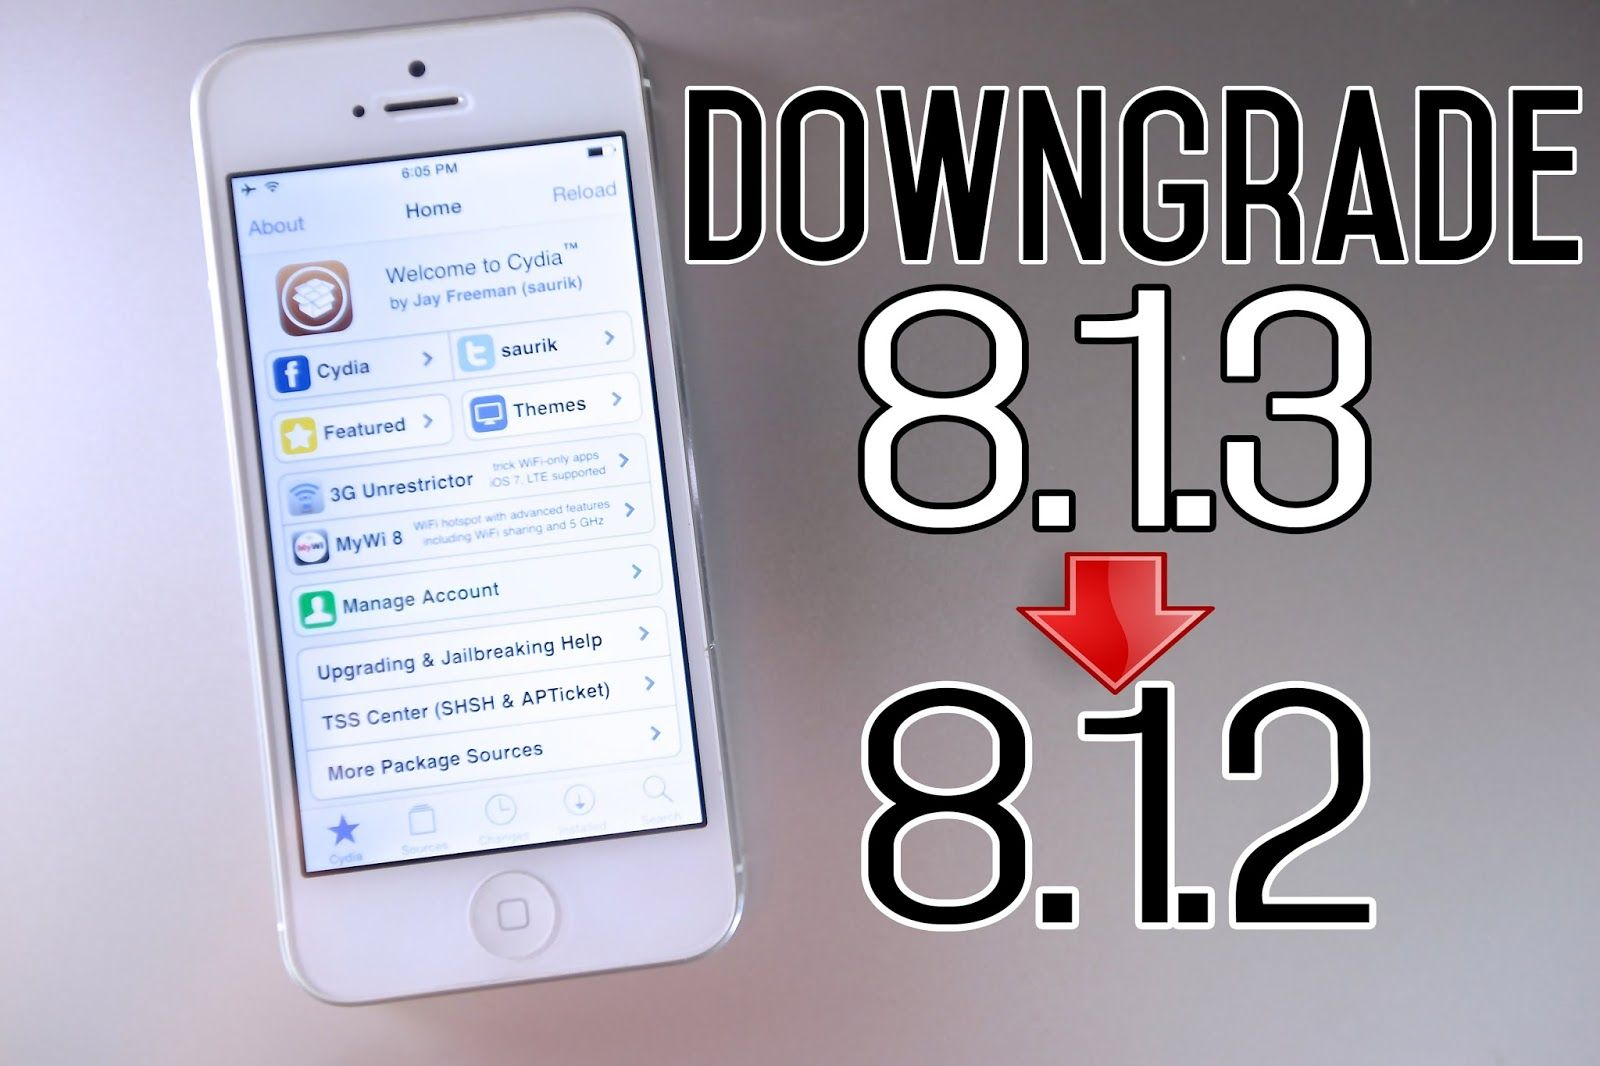 How to downgrade from ios 813 to 812 stepbystep on